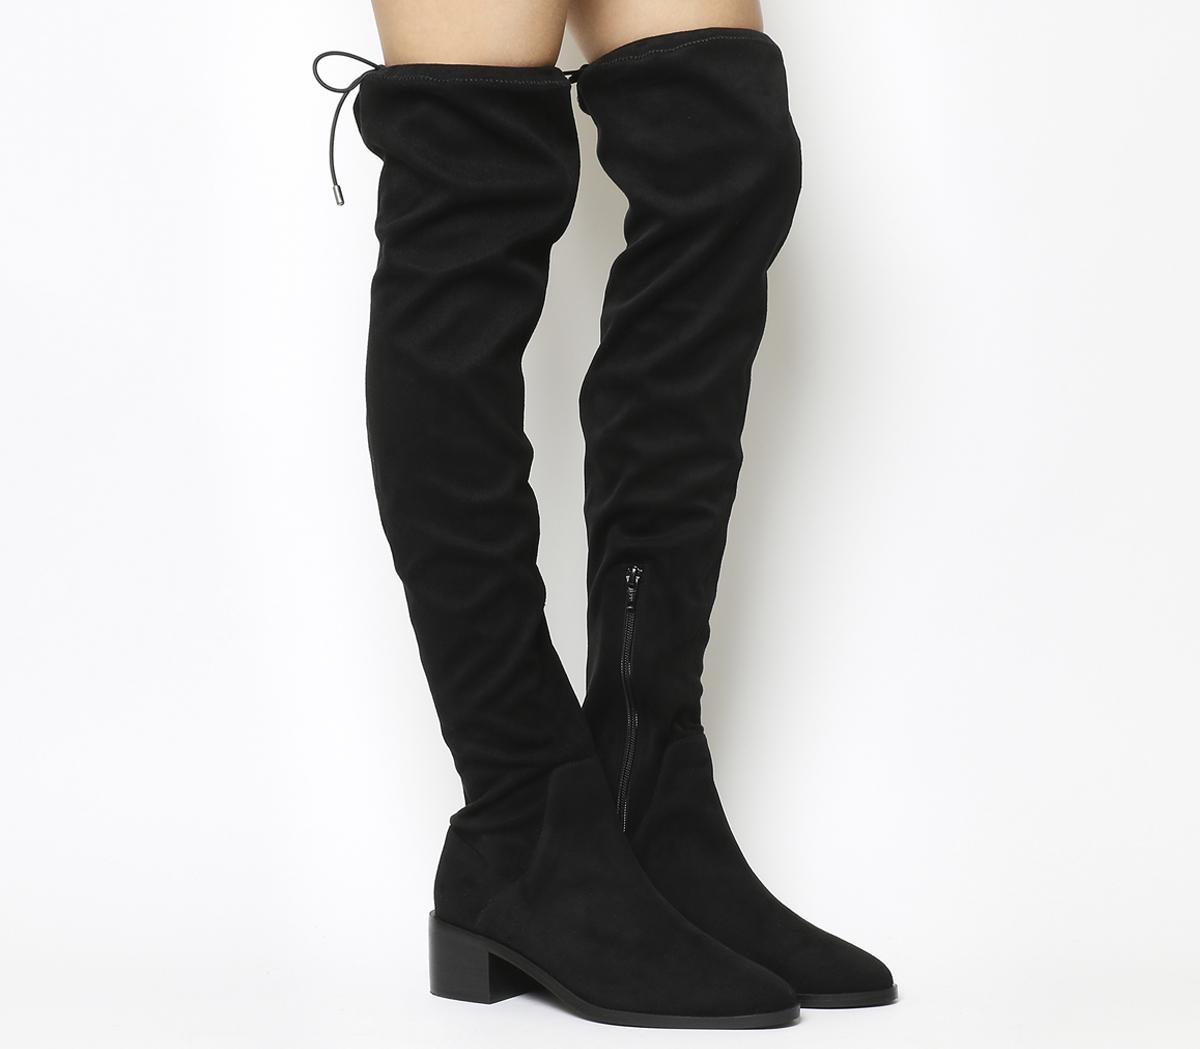 Karma Over The Knee Boots